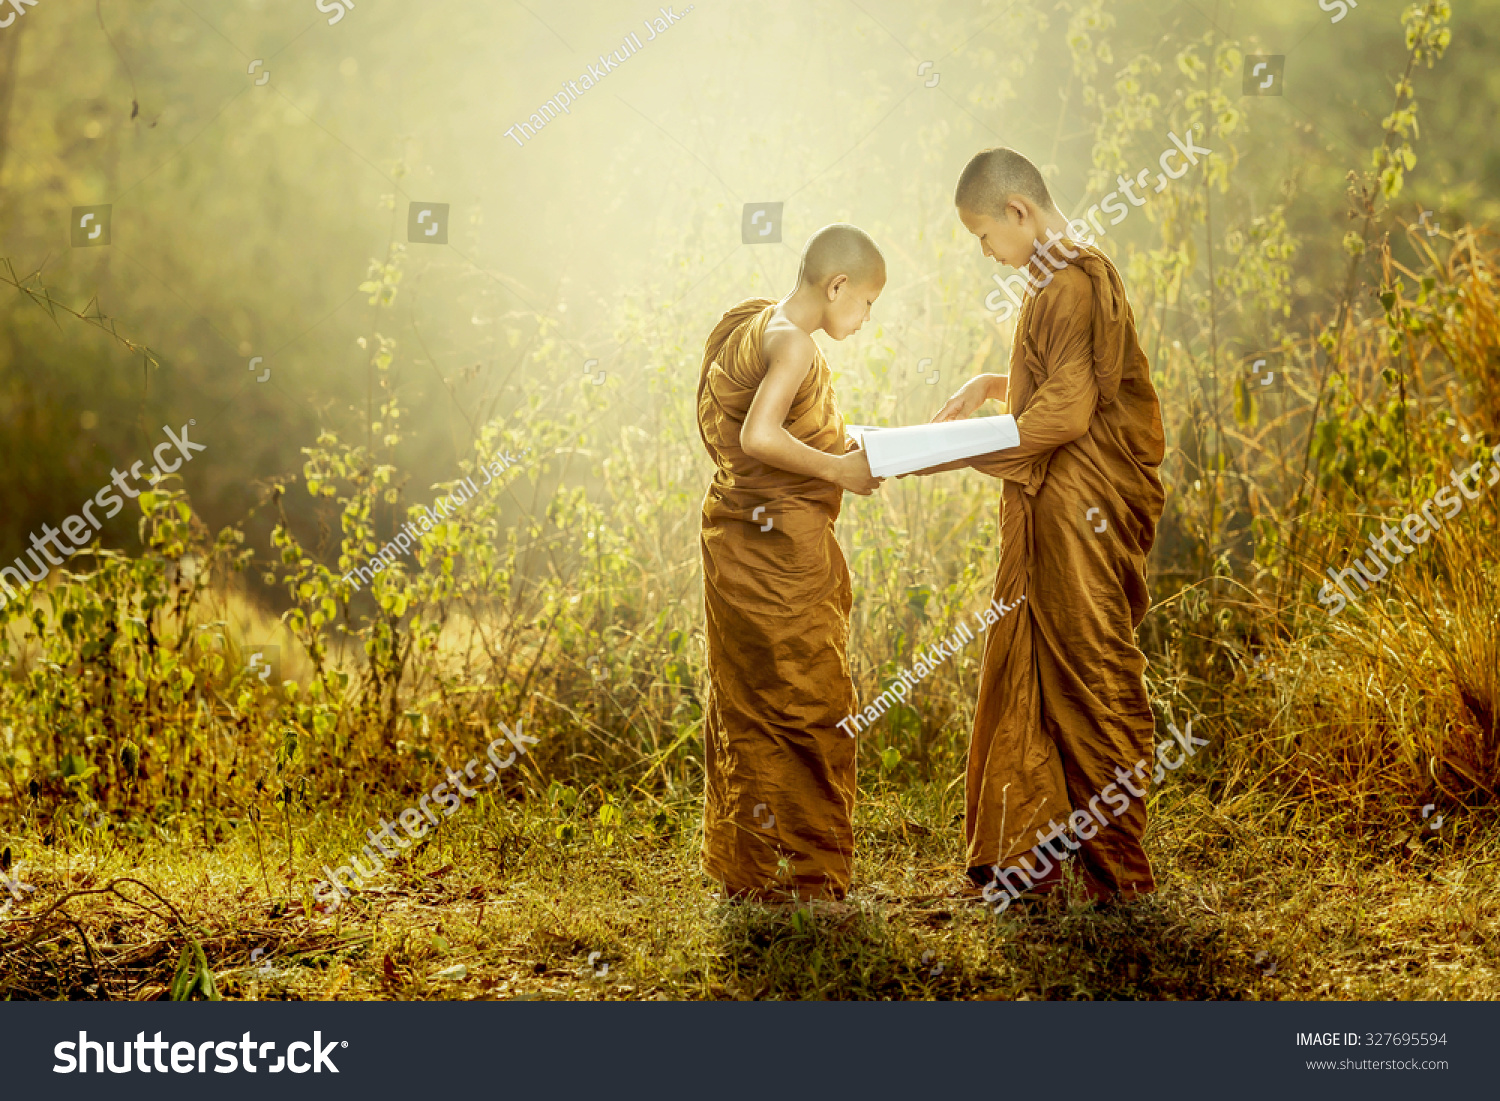 how to become a buddhist missionary